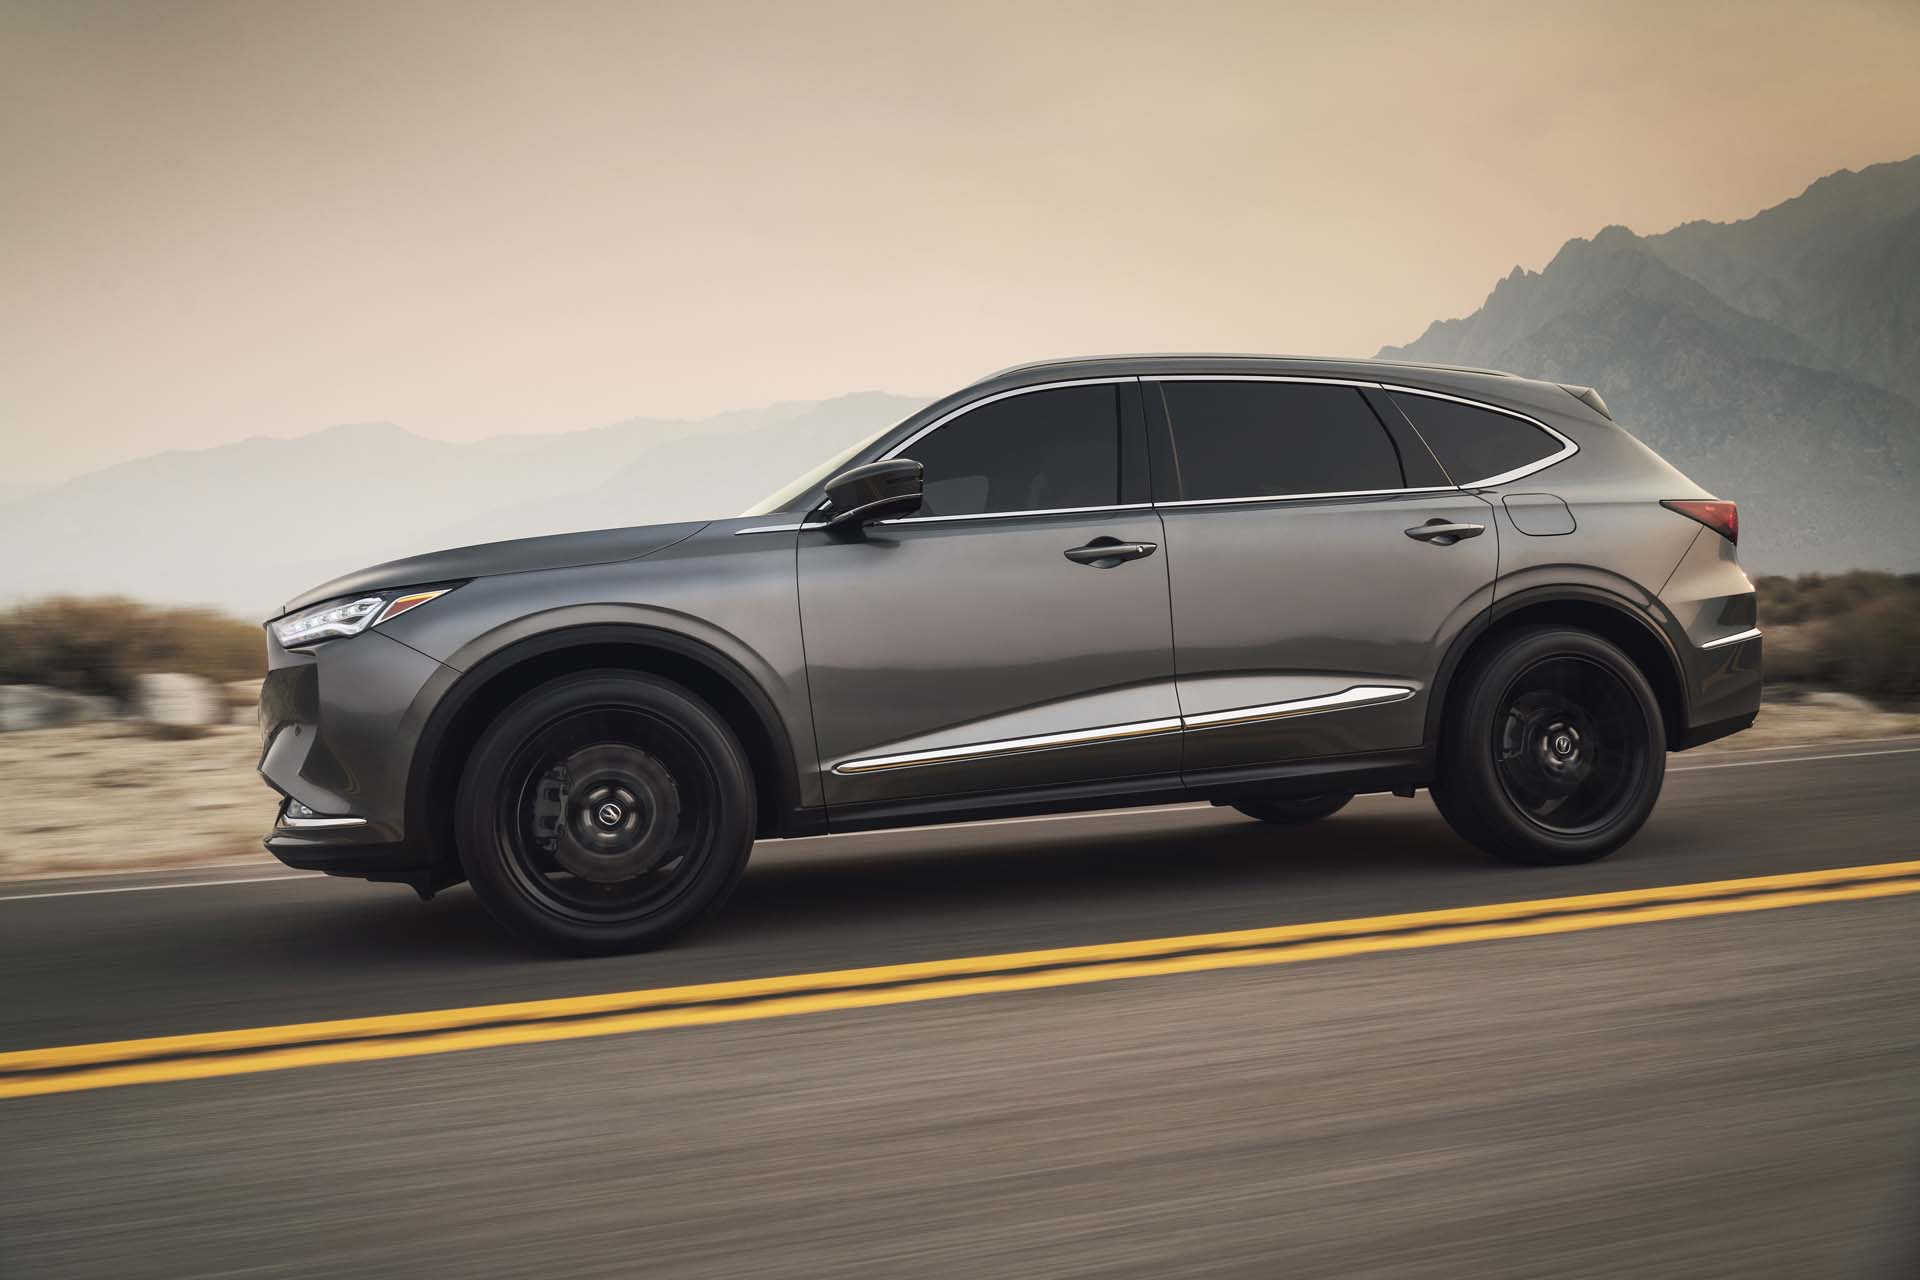 Redesigned 2022 Acura Mdx Suv Costs 2 400 More Starts At 47 925